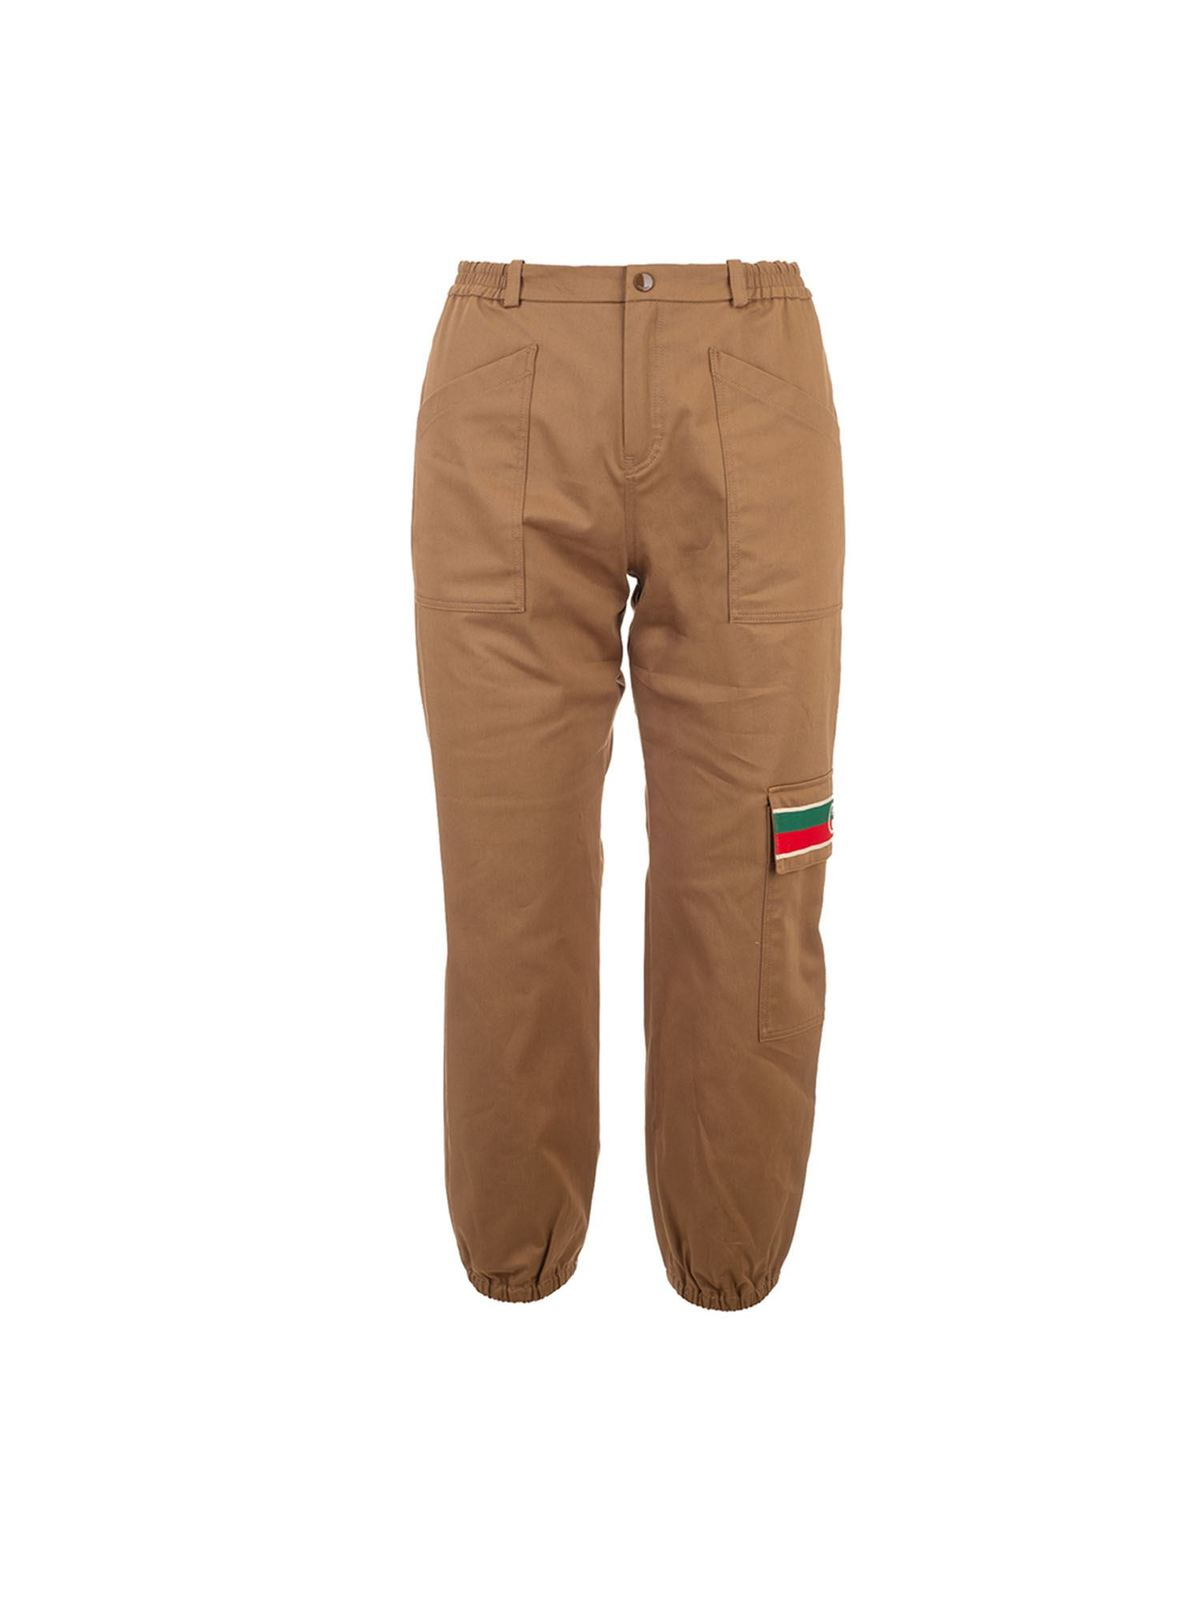 Gucci CAMEL-COLORED PANTS WITH POCKETS